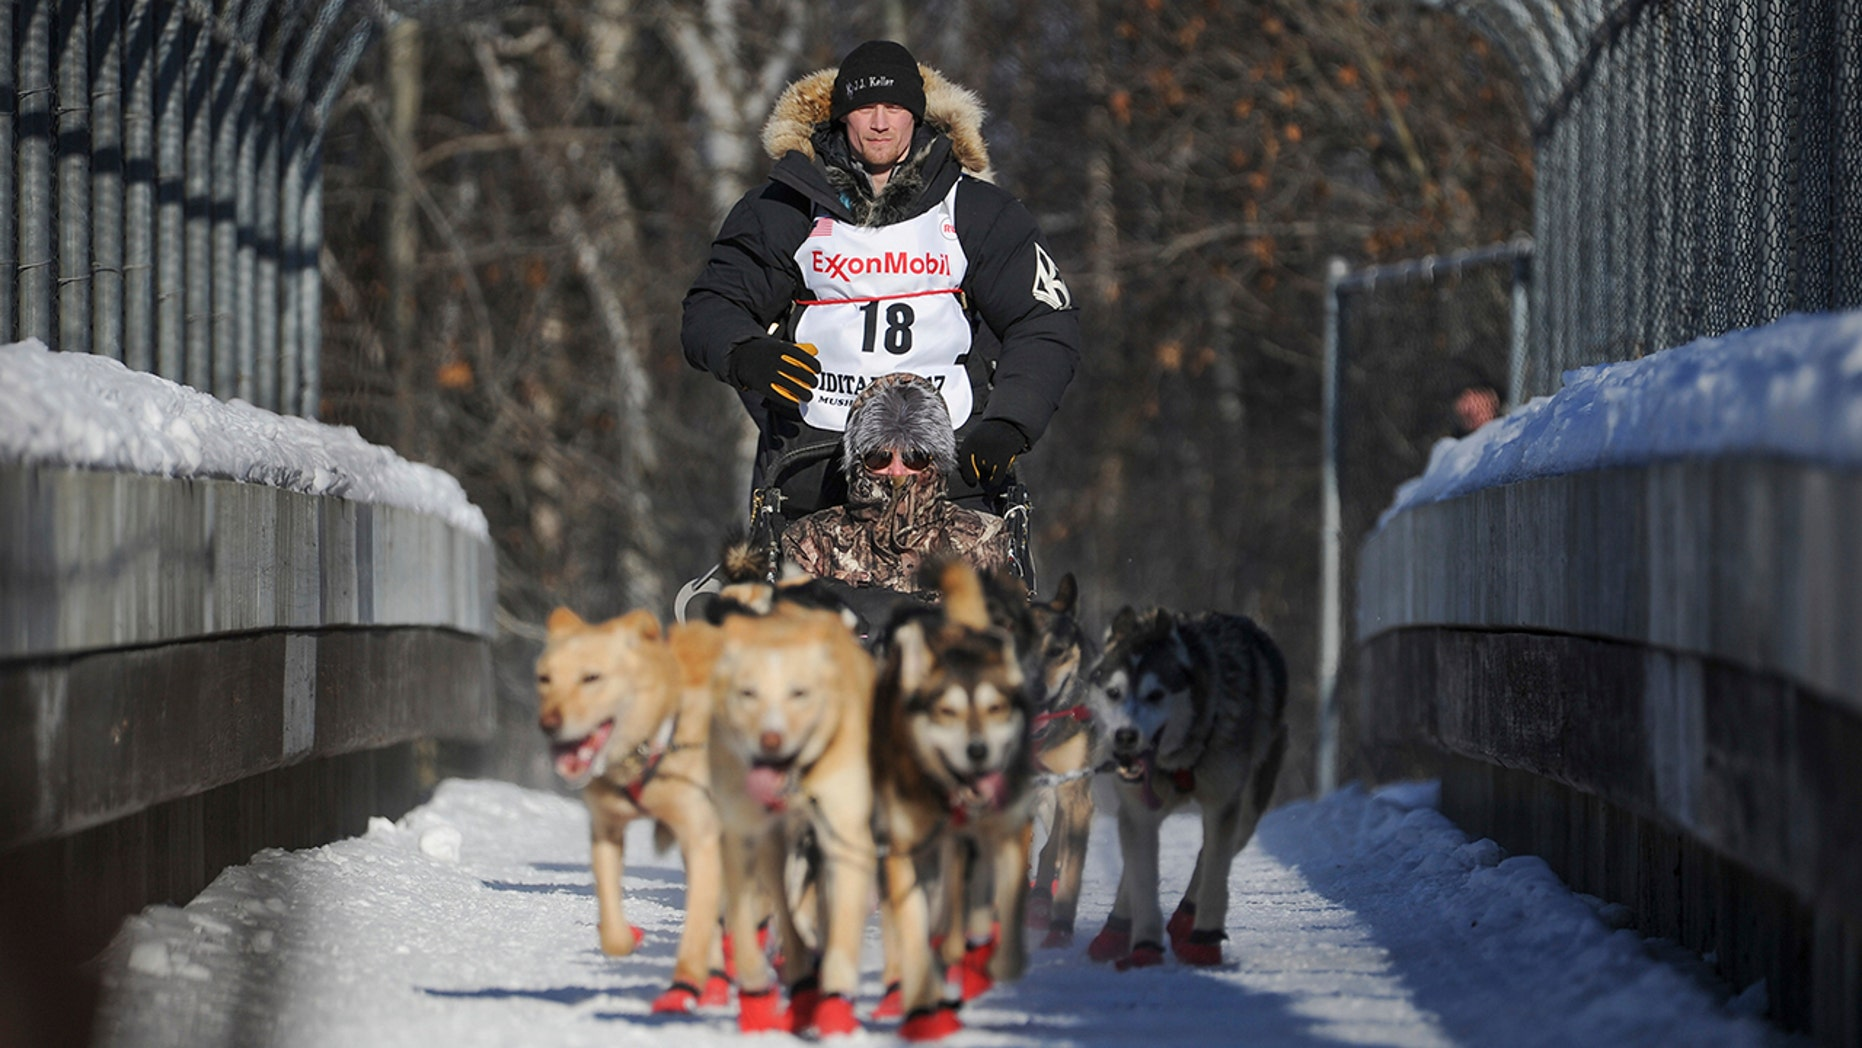 In this March 4, 2017, file photo, four-time and defending champion Dallas Seavey mushes during the ceremonial start of the Iditarod Trail Sled Dog Race in Anchorage, Alaska. Seavey denies he administered banned drugs to his dogs in this year's race, and has withdrawn from the 2018 race in protest. The Iditarod Trail Committee on Monday, Oct. 23, 2017, identified Seavey as the musher who had four dogs test positive for a banned opioid pain reliever after finishing the race last March in Nome.